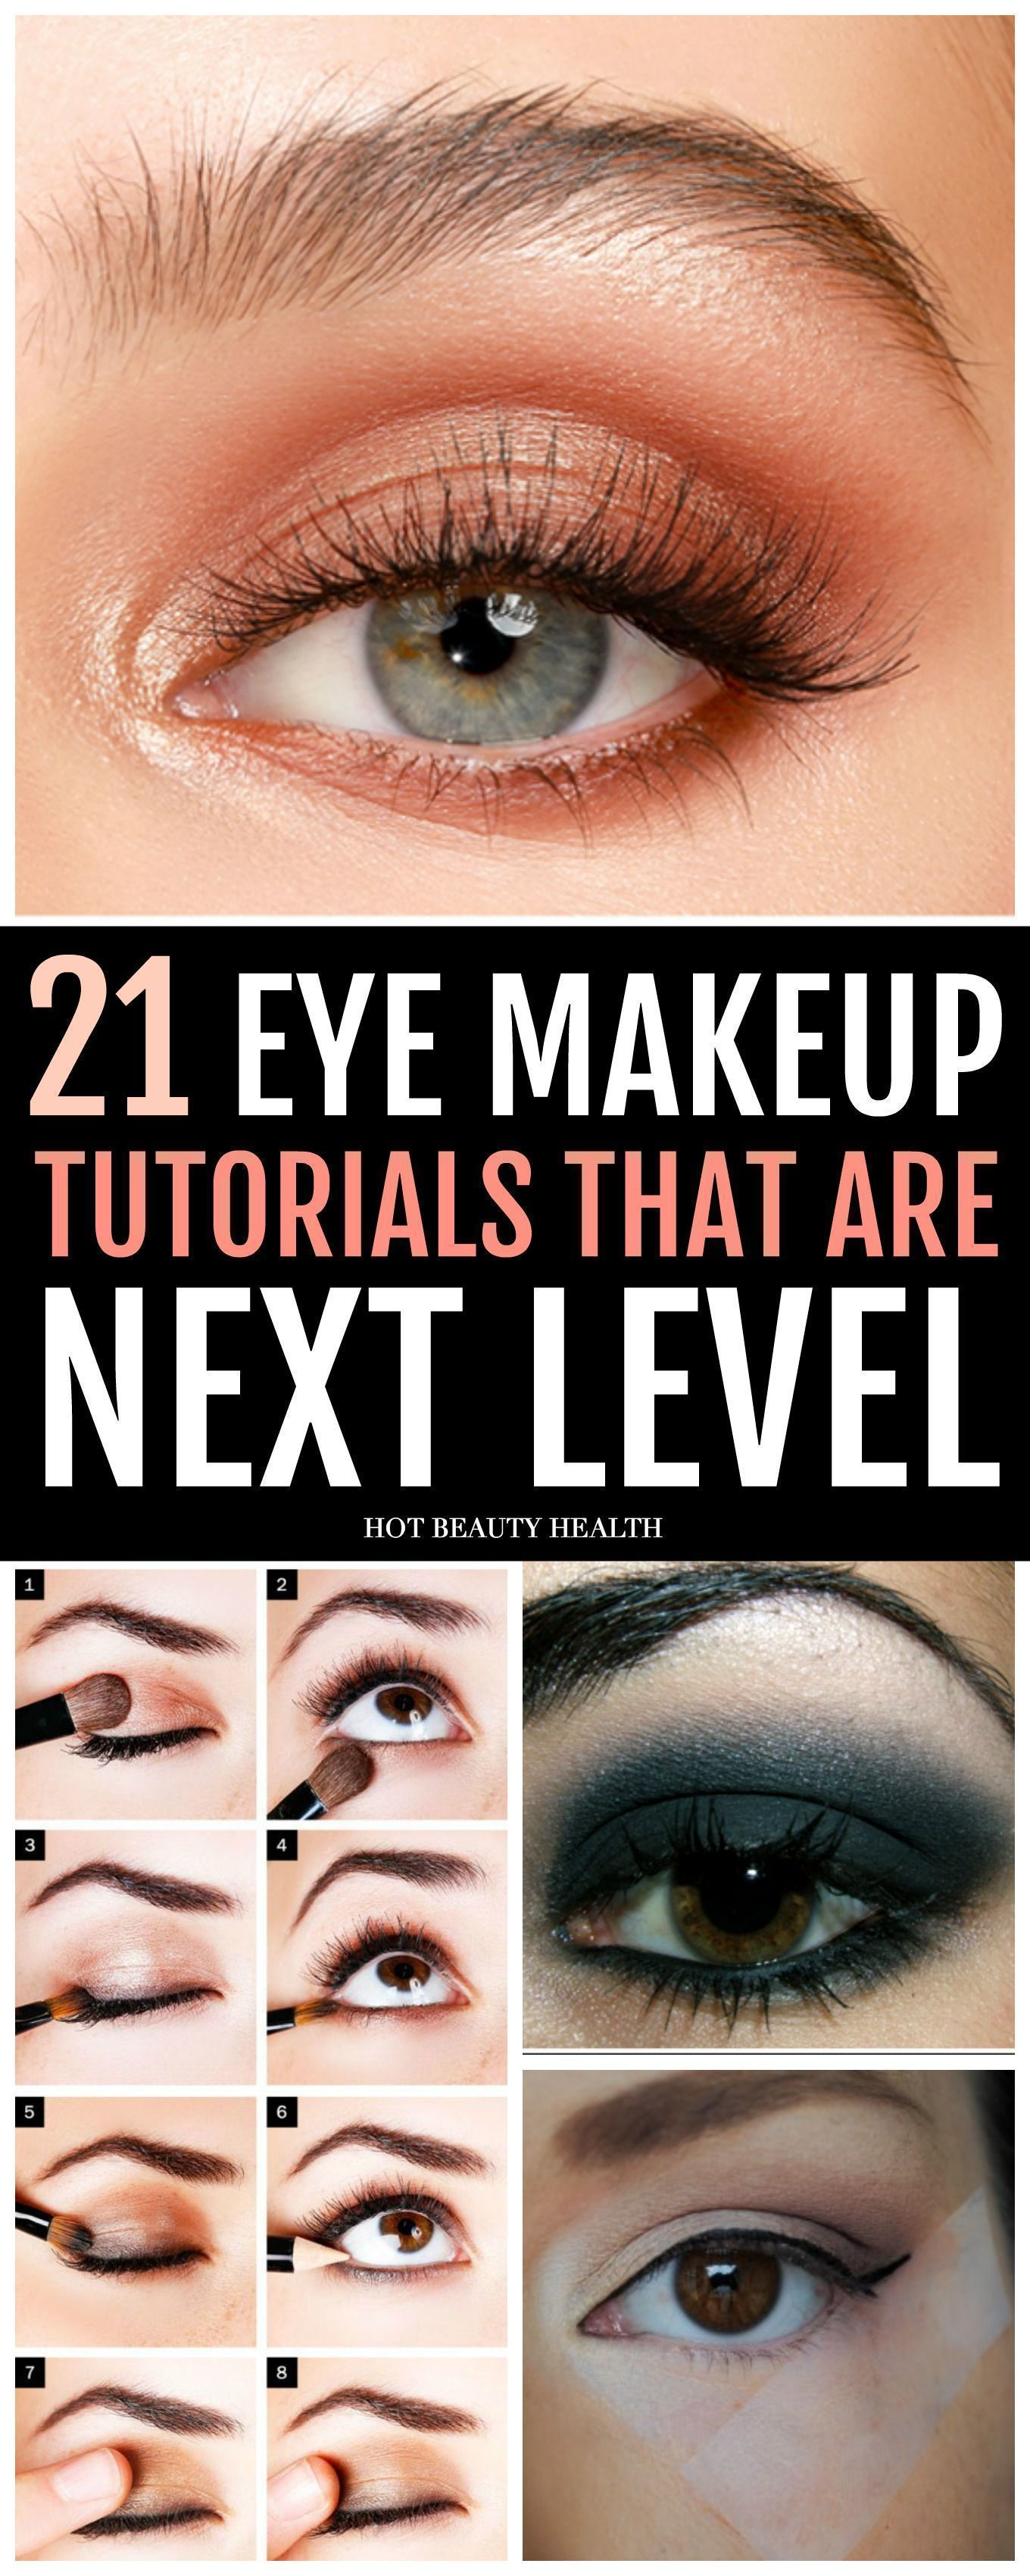 21 easy dramatic eye makeup ideas for beginners. Amazing